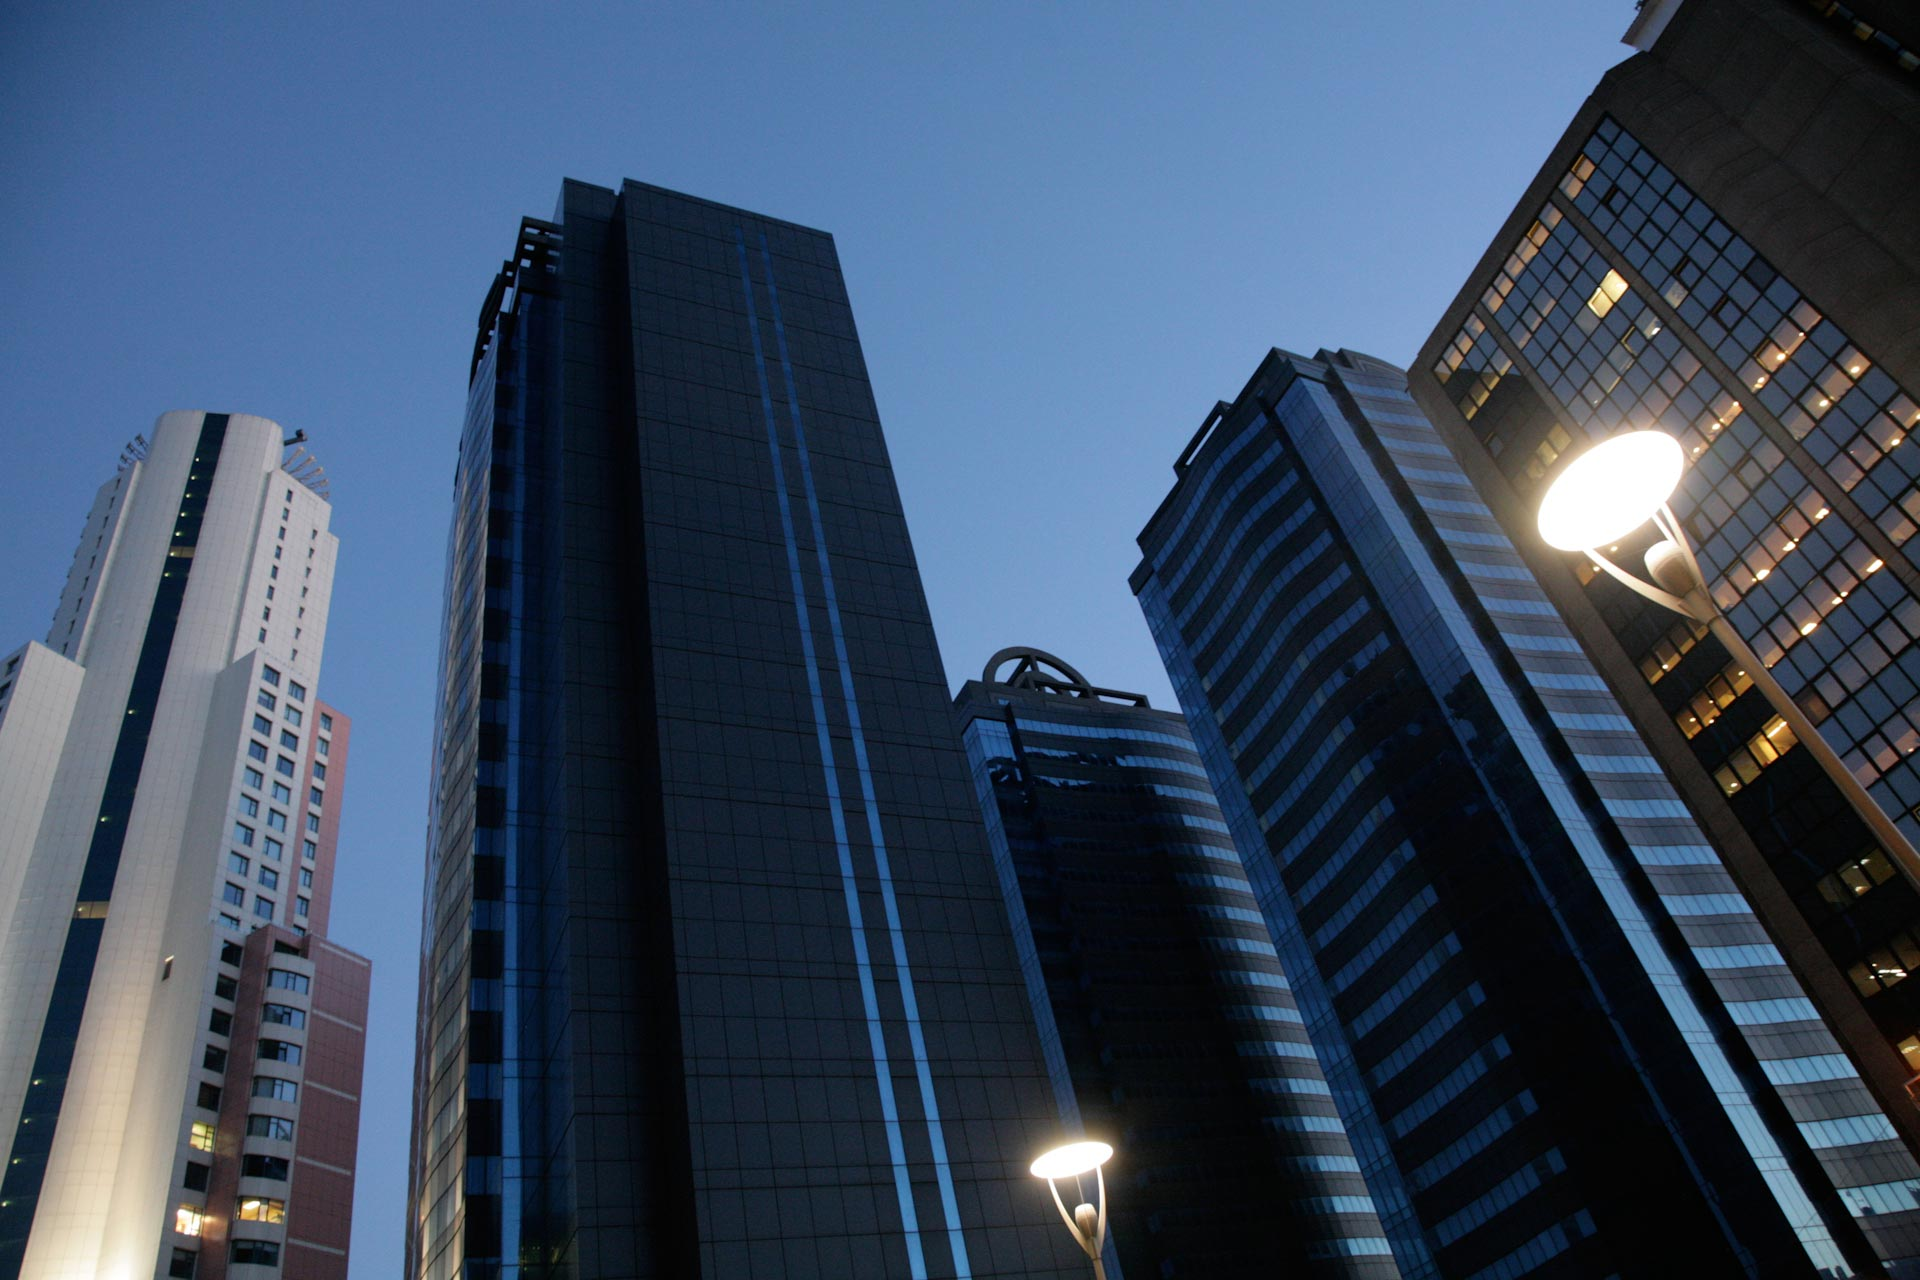 Turkish economical dreams of the AKP and borrowed money built the towers of Şişli